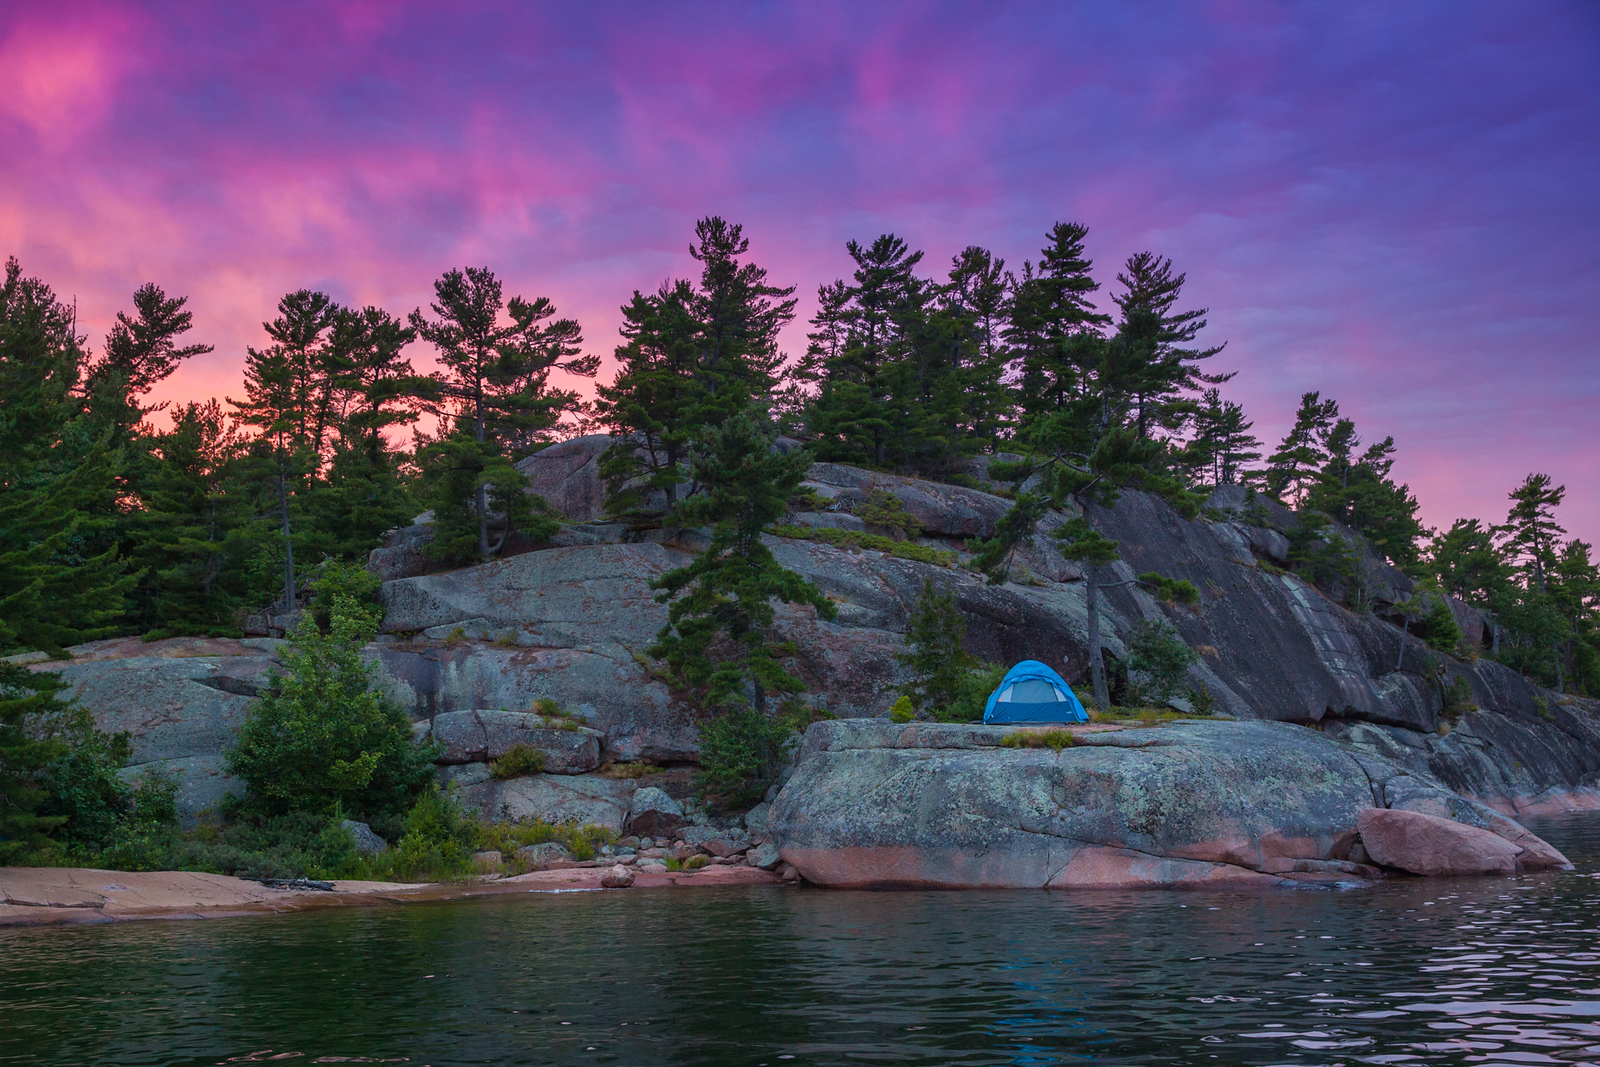 The perfect camping spot on the Benjamin Islands